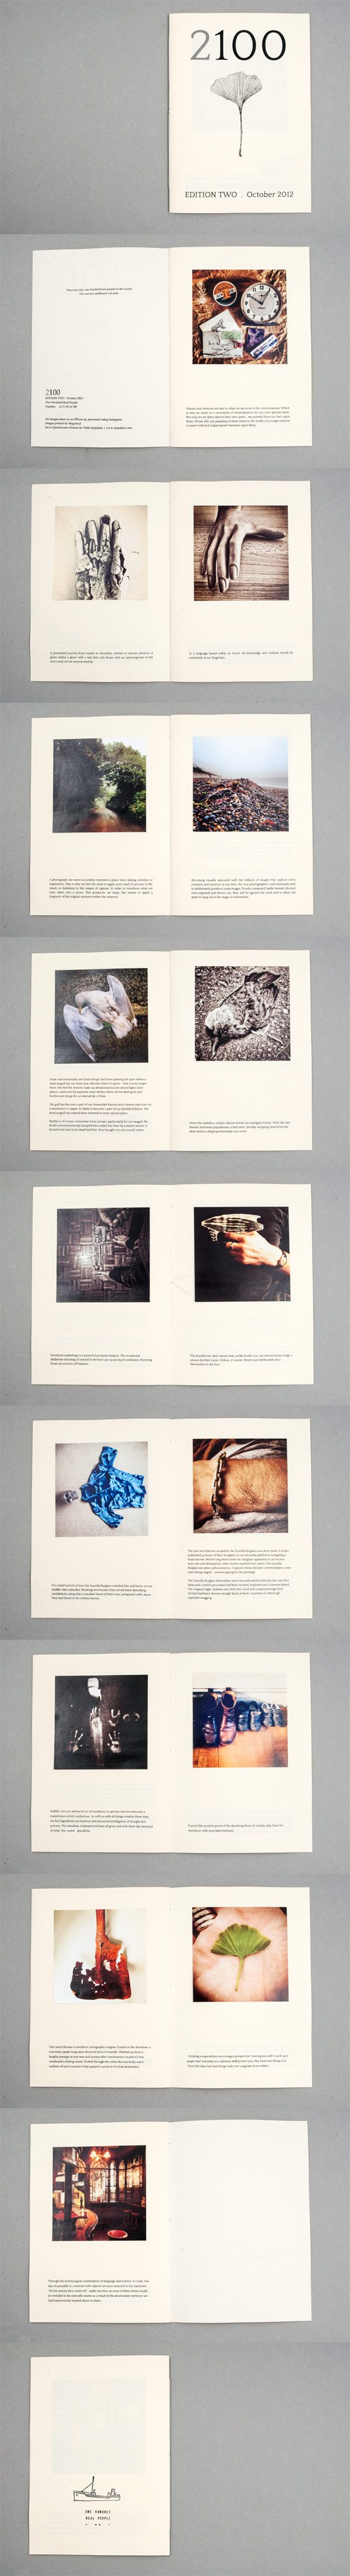 A book of aphorisms and stories accompanied by photographs.  A5, 18pp Hand sewn, laser printed on conqueror with hand tipped in images with aphorisms, stories and thoughts. The front cover features a hand drawn sketch.  This is the second in a collection of ten booklets.